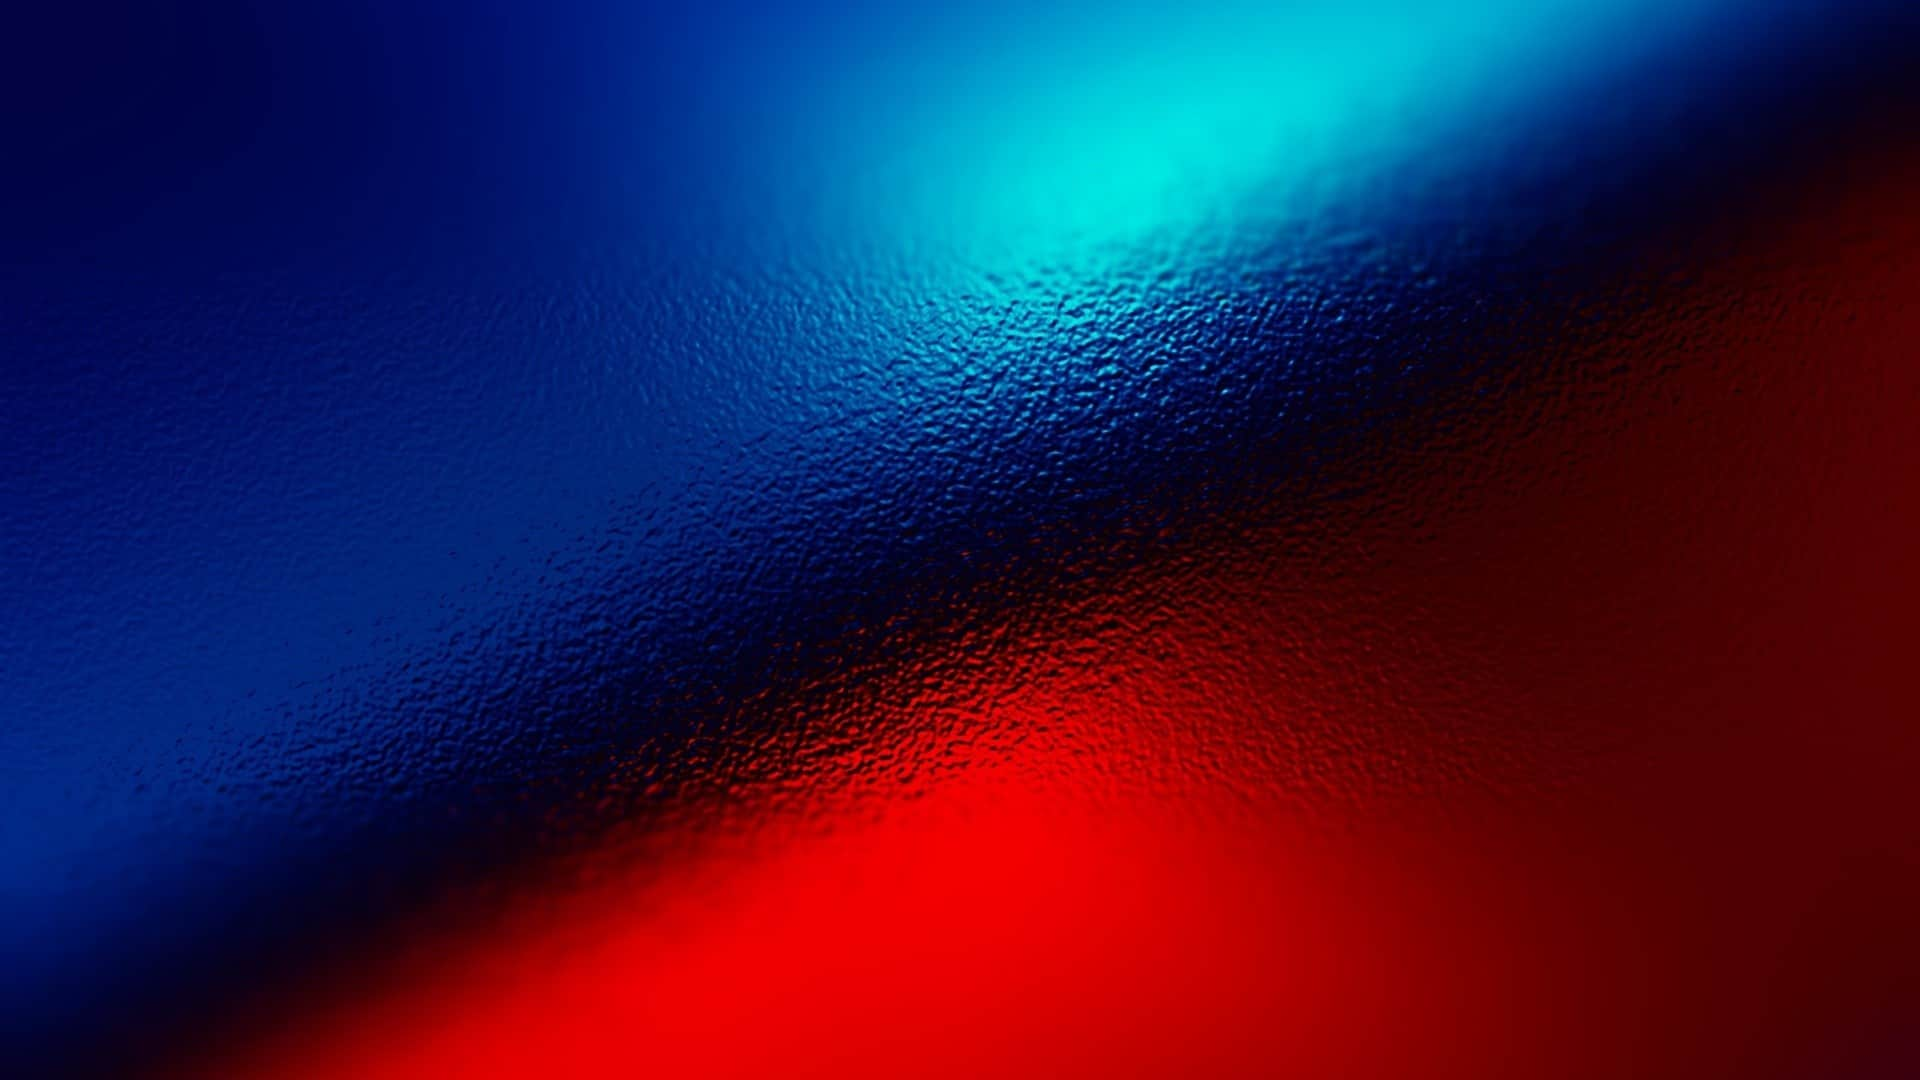 Blue and Red Investing - ACCESS